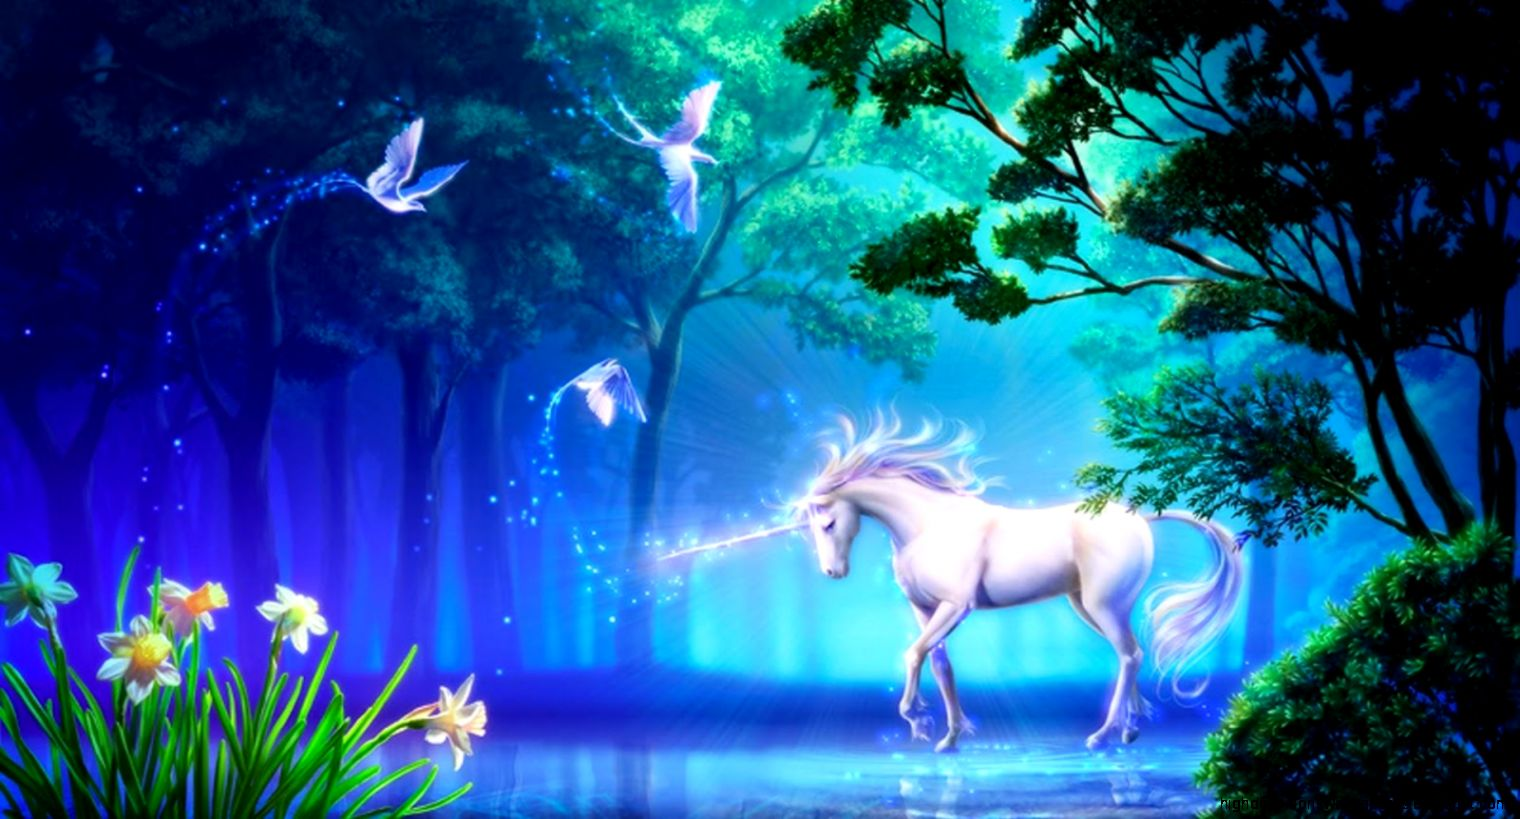 Unicorn Live Wallpaper Magic Android Apps On Google - Unicorn 3d Wallpaper Hd , HD Wallpaper & Backgrounds